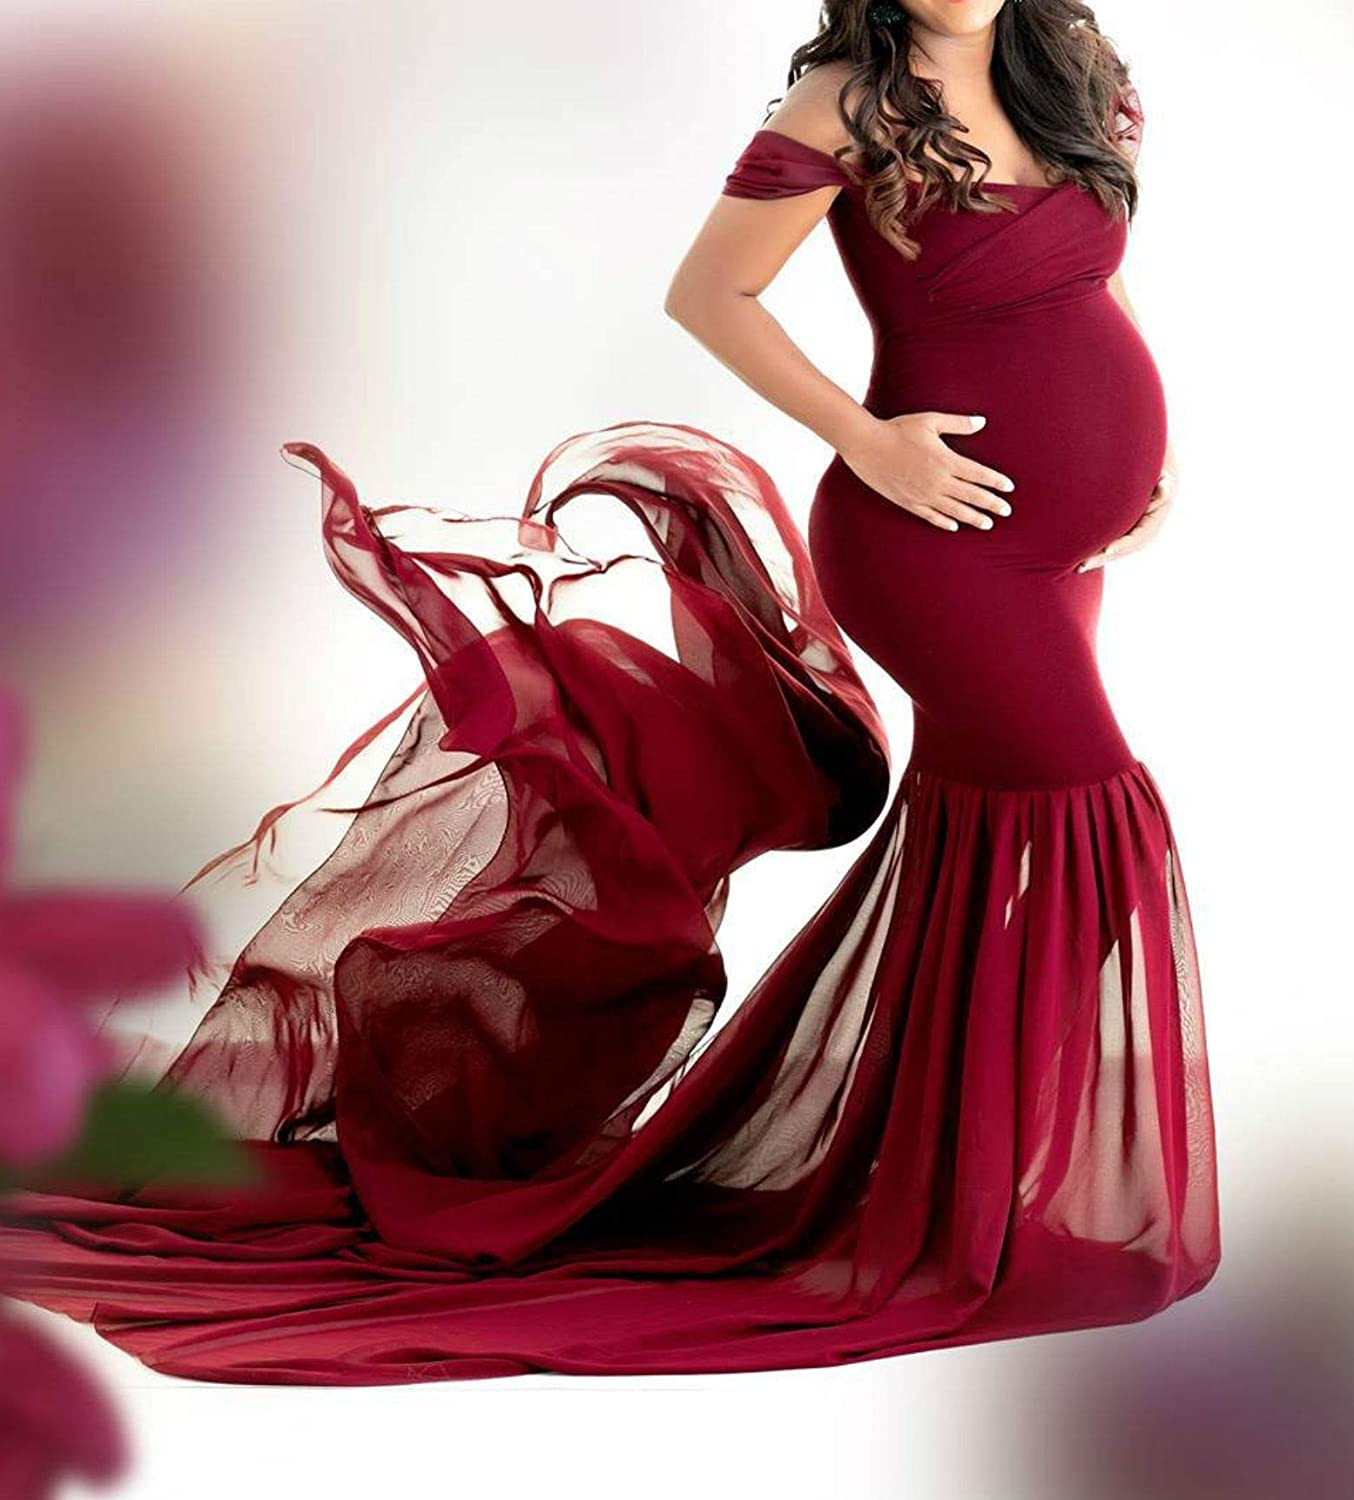 Arbres Maternity Off Shoulder Fitted Gowns Baby Shower Dress for Photography Wedding Dress